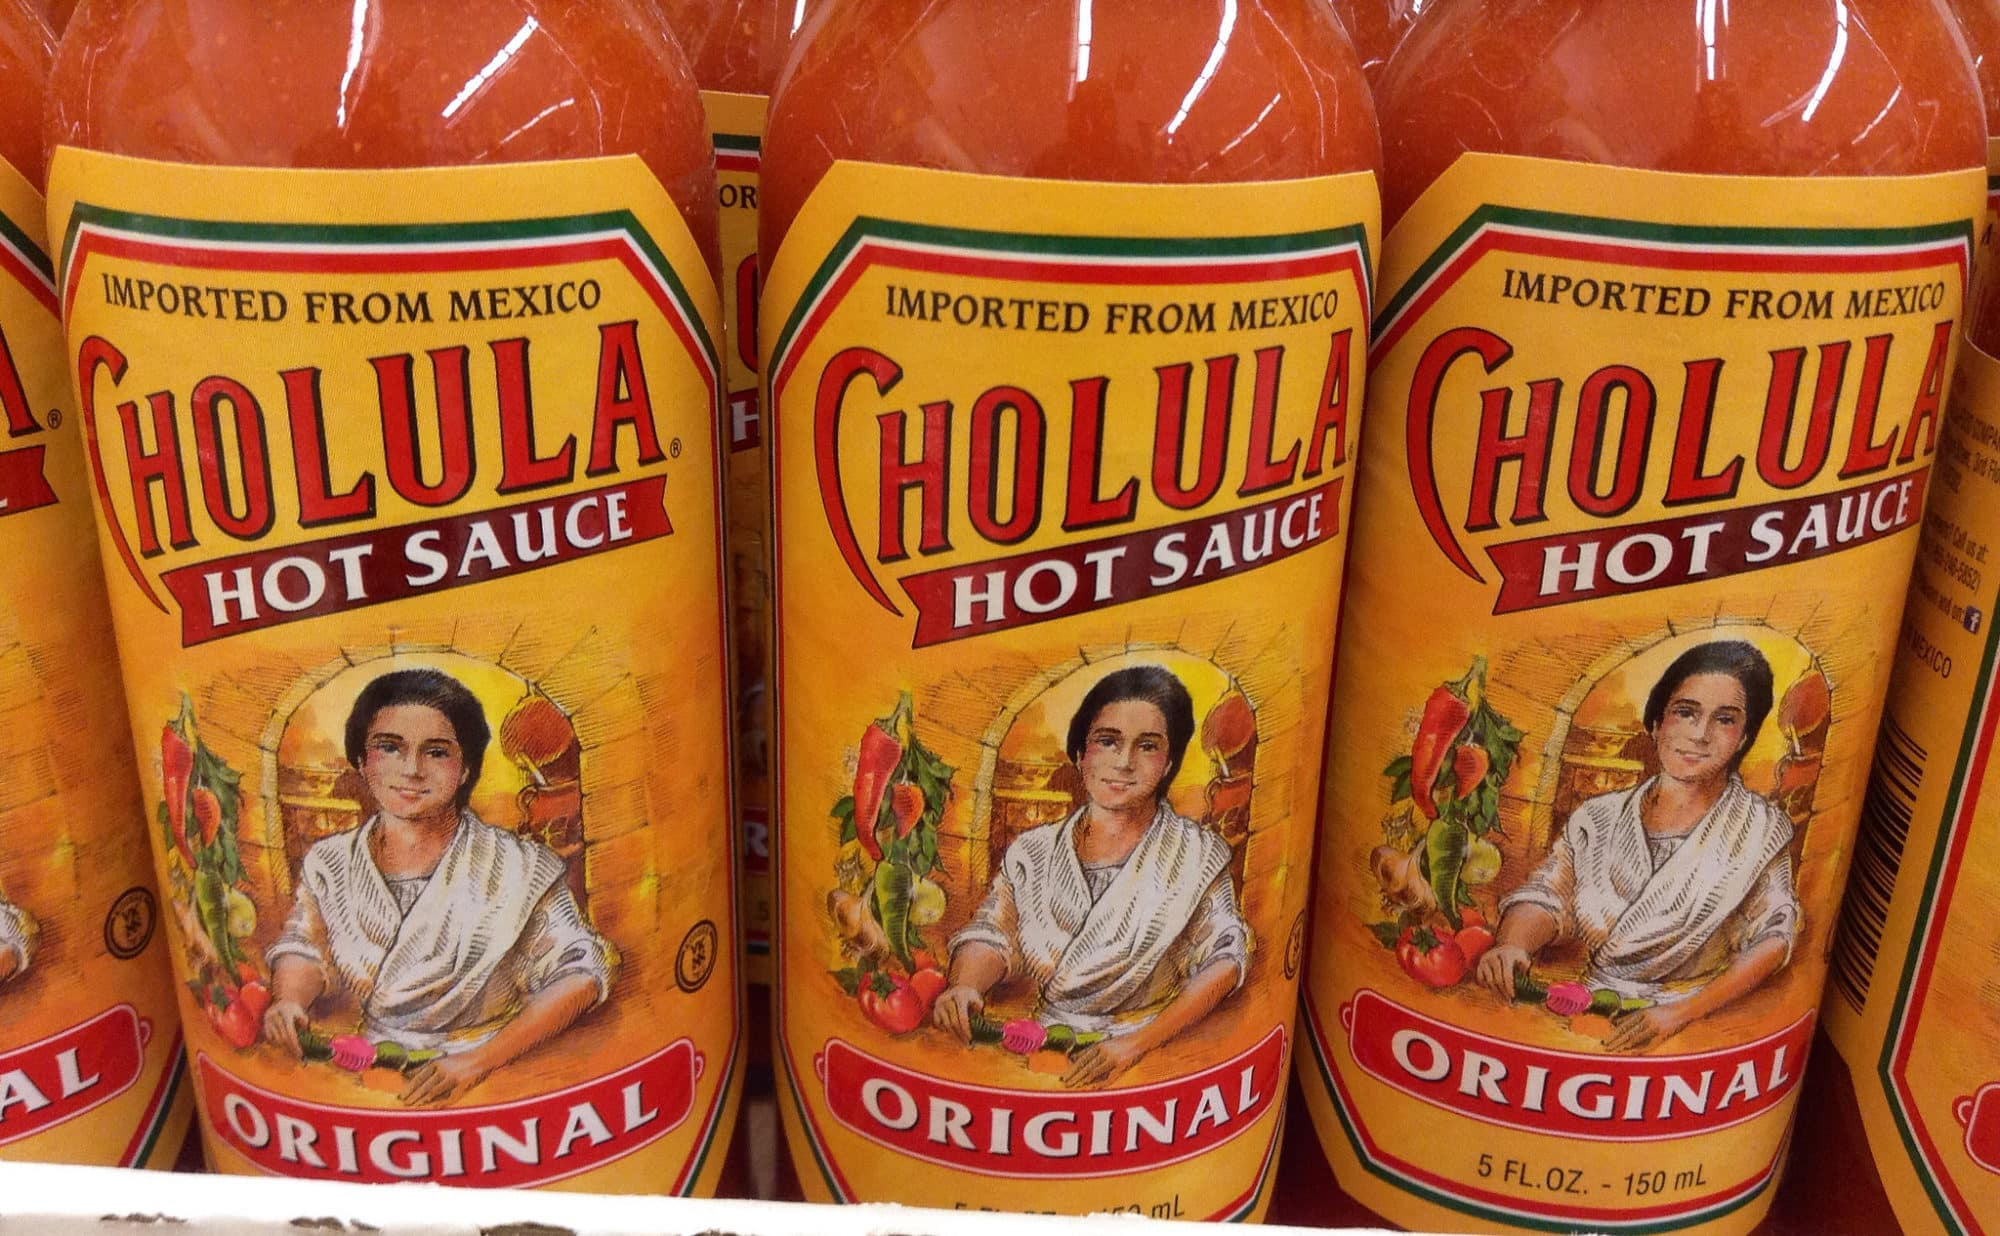 Cholula Hot Sauce Nutrition: How Healthy Is It?